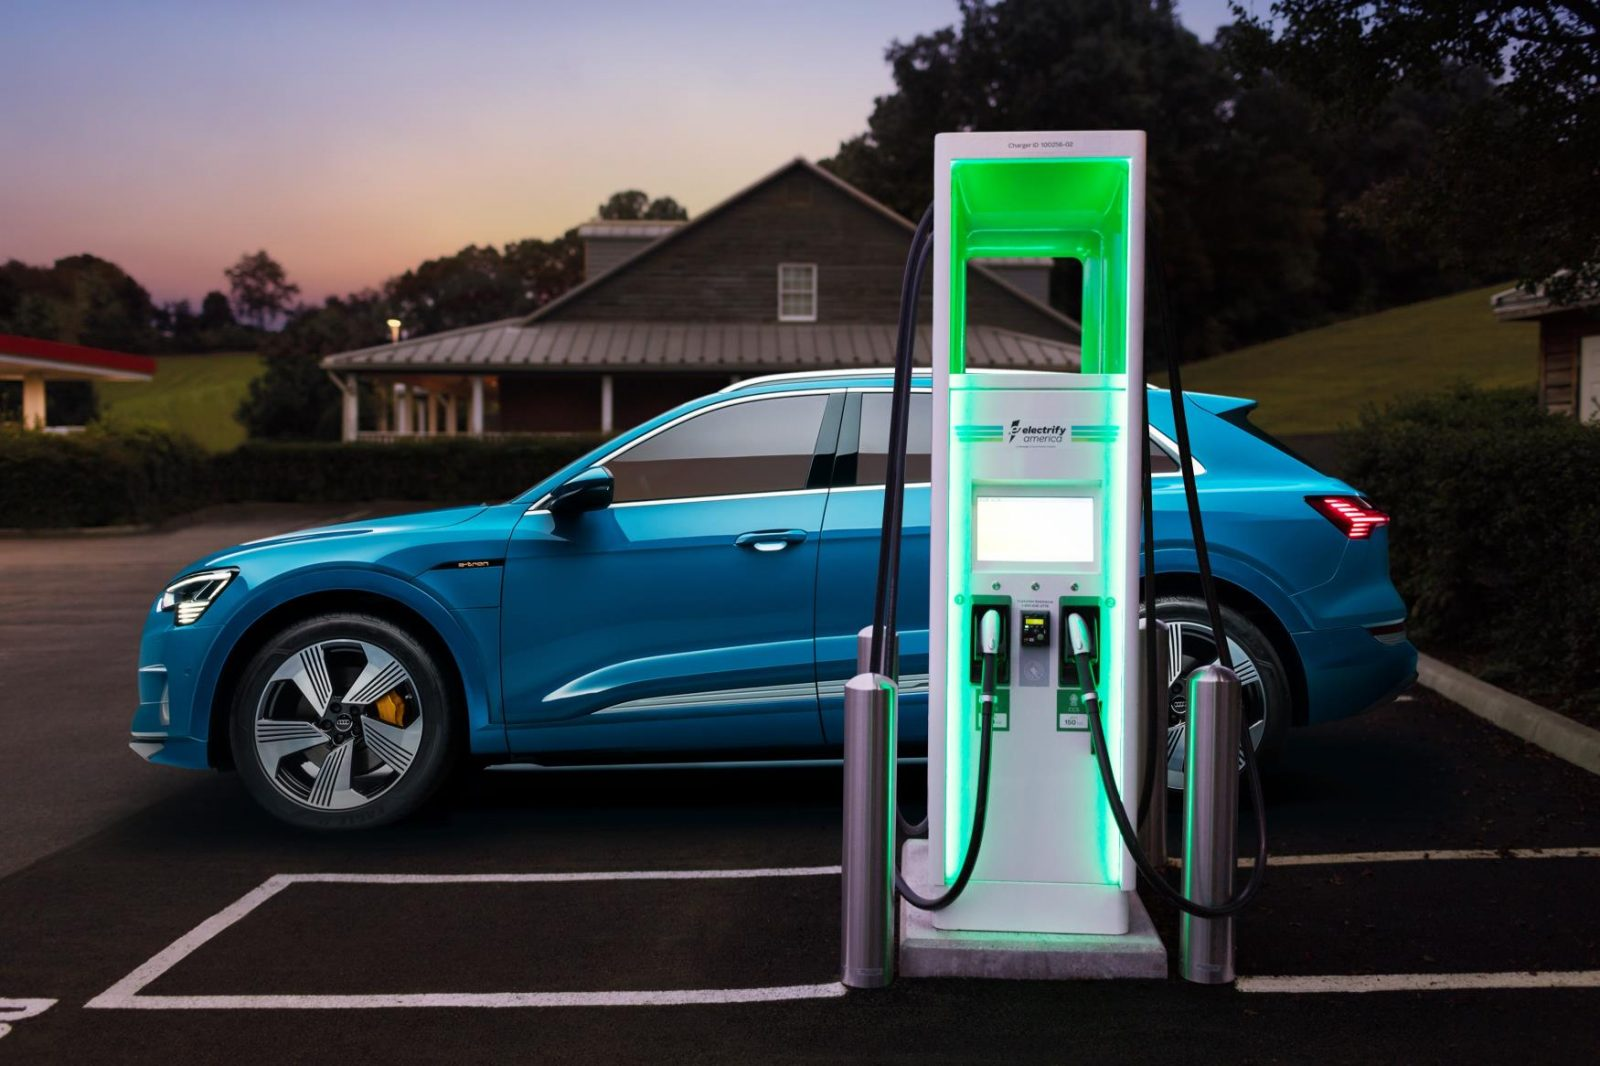 Electrify America To Install Ohio Turnpike S First Electric Vehicle Charging Stations